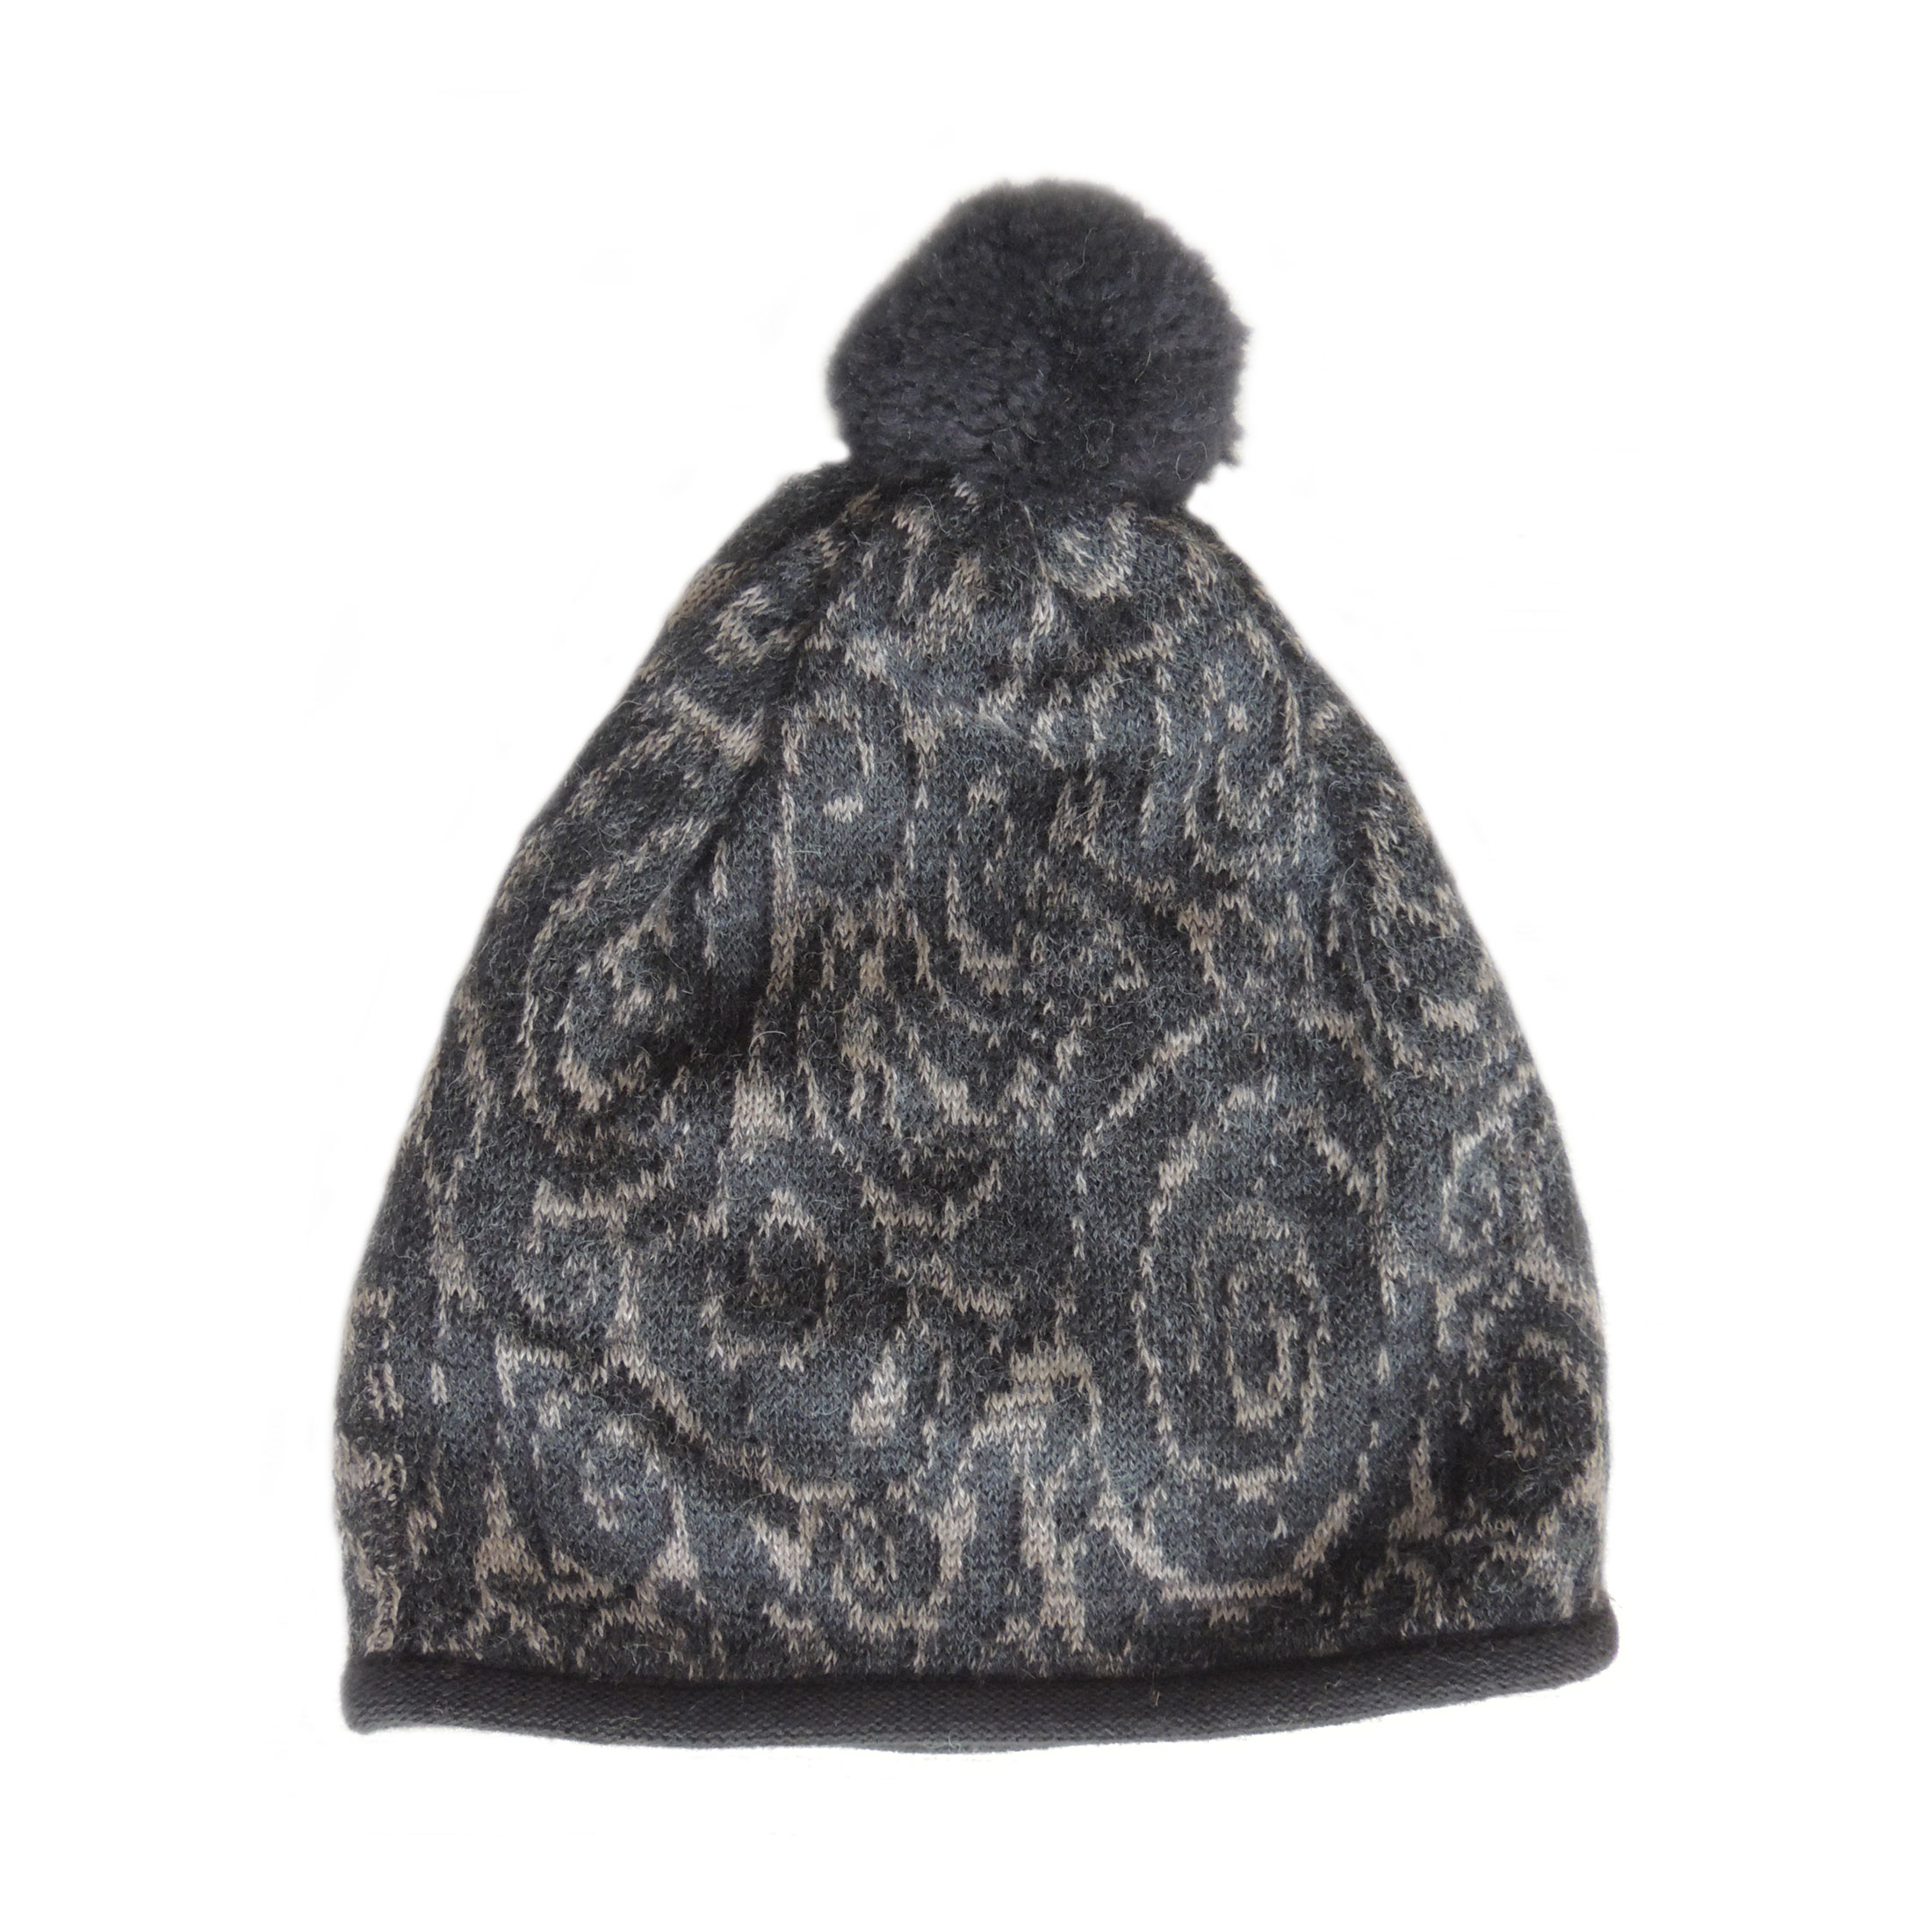 cd353a10 Women's beanie / hat black – light taupe with pom pom and embroidered  details, alpaca blend